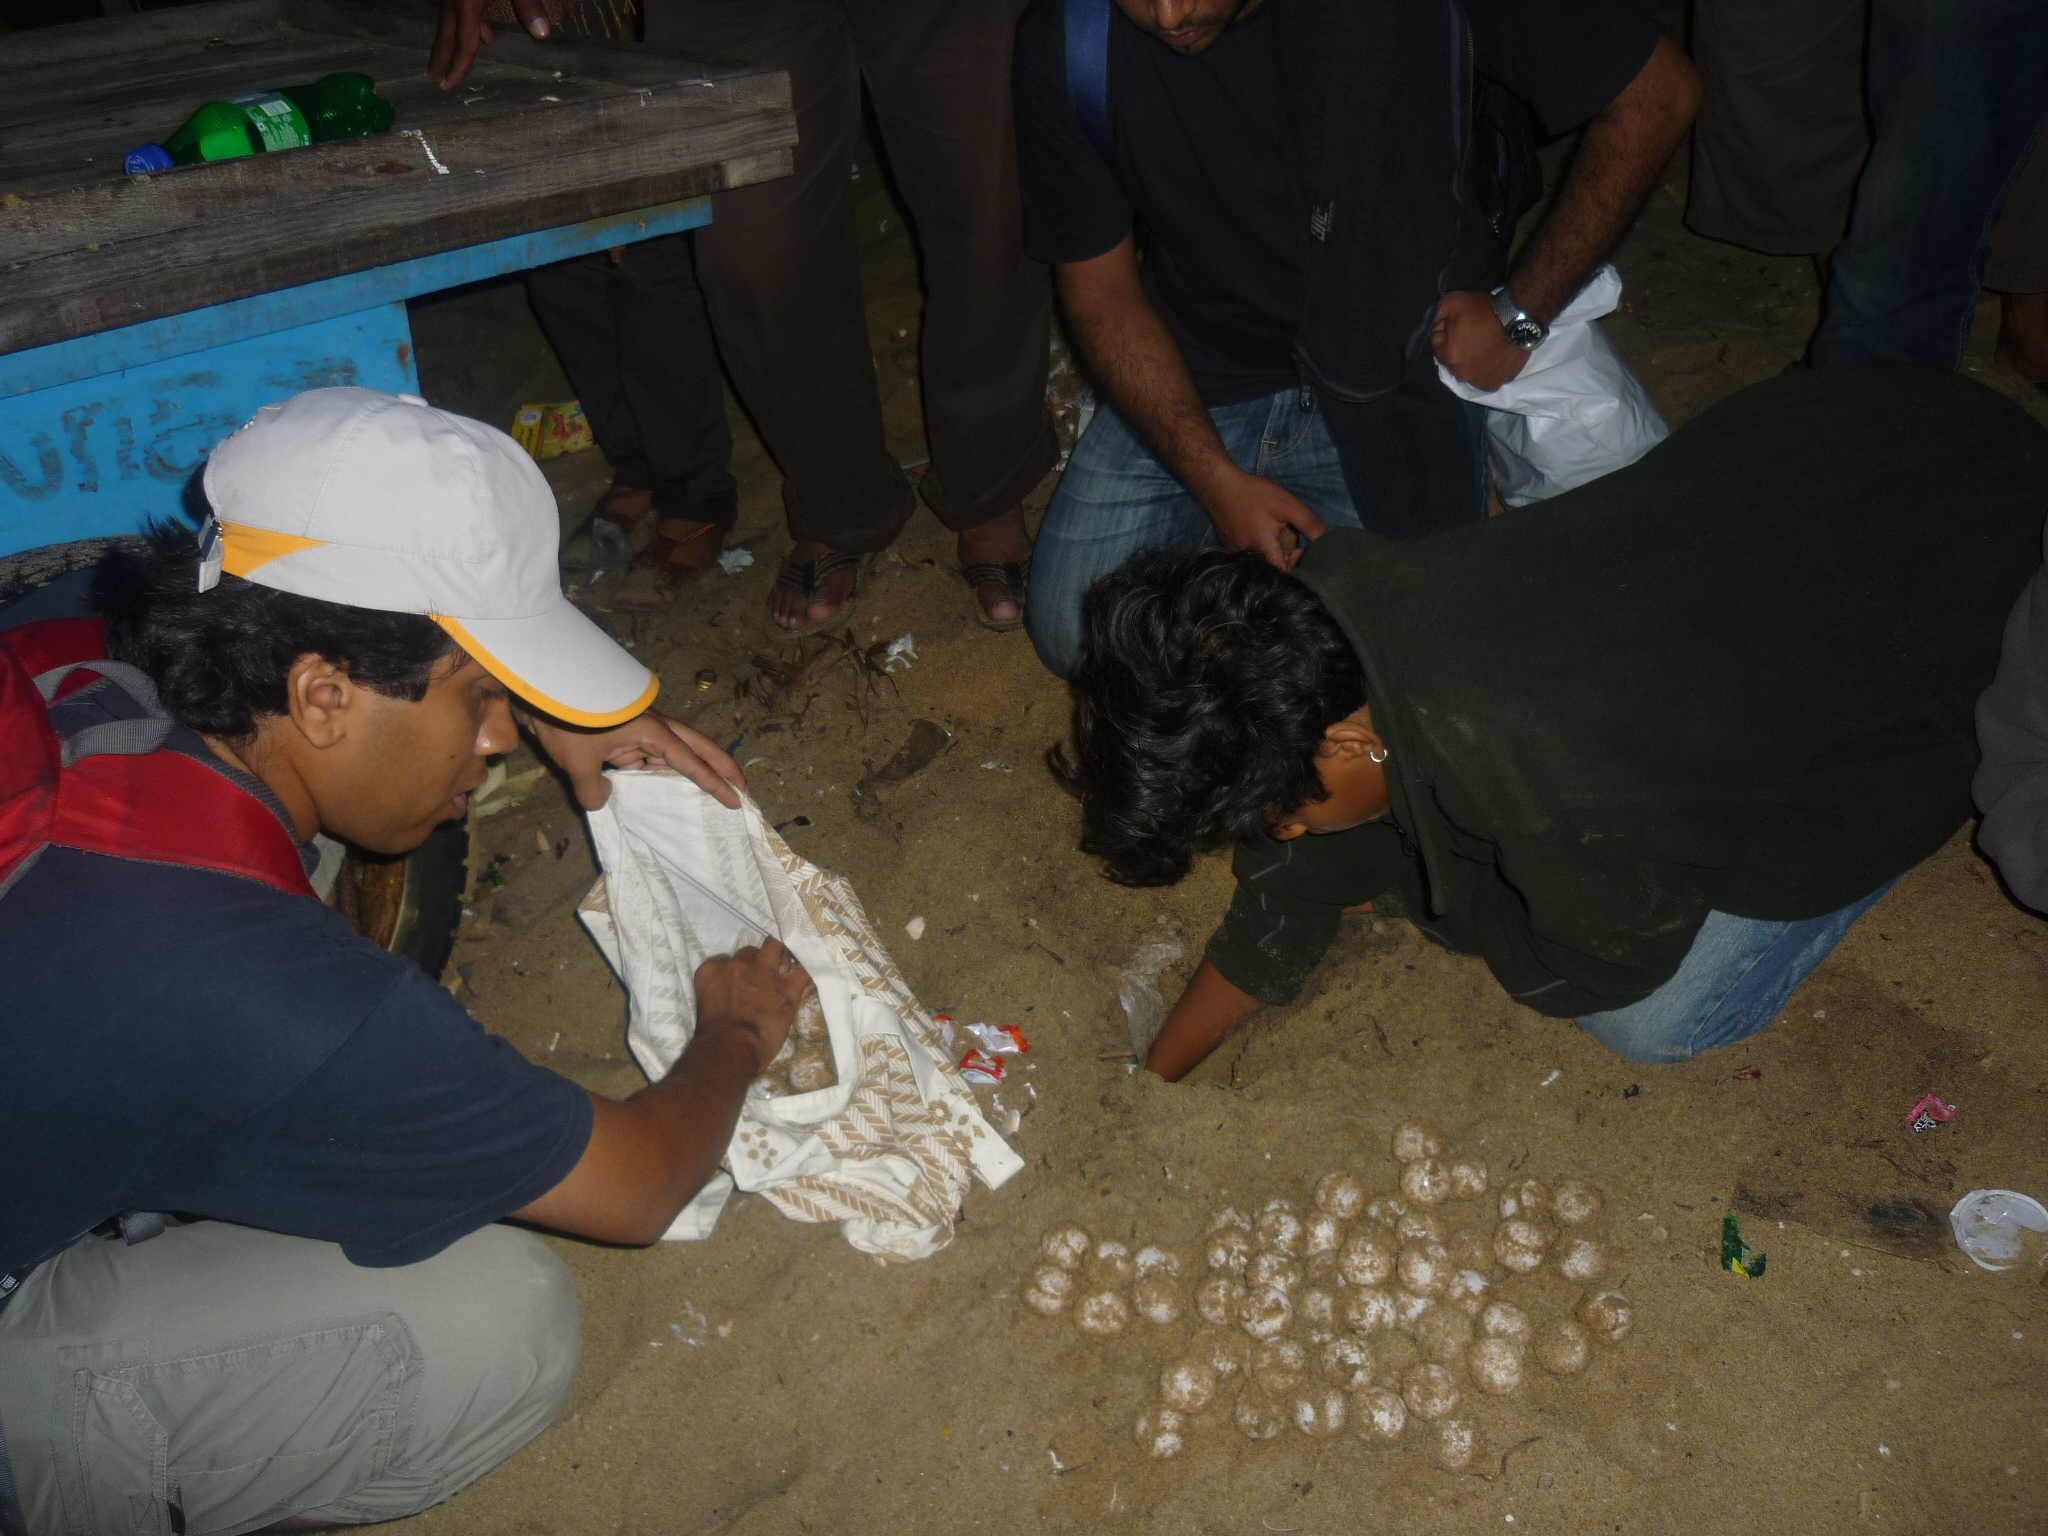 The volunteers unearthing the eggs